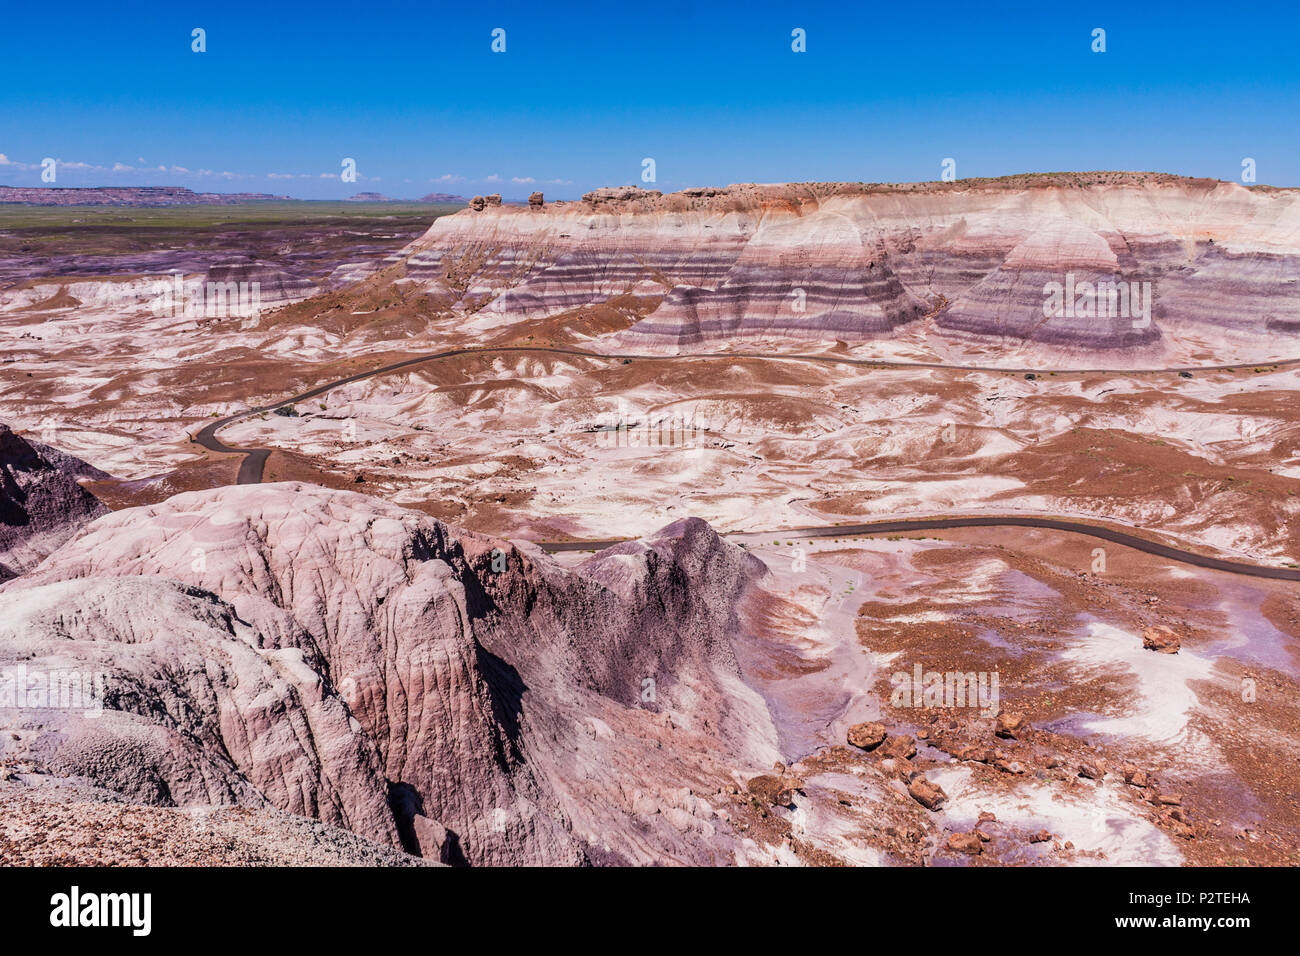 Blue Mesa area of the Painted Desert in the Petrified Forest National Park in Arizona. - Stock Image